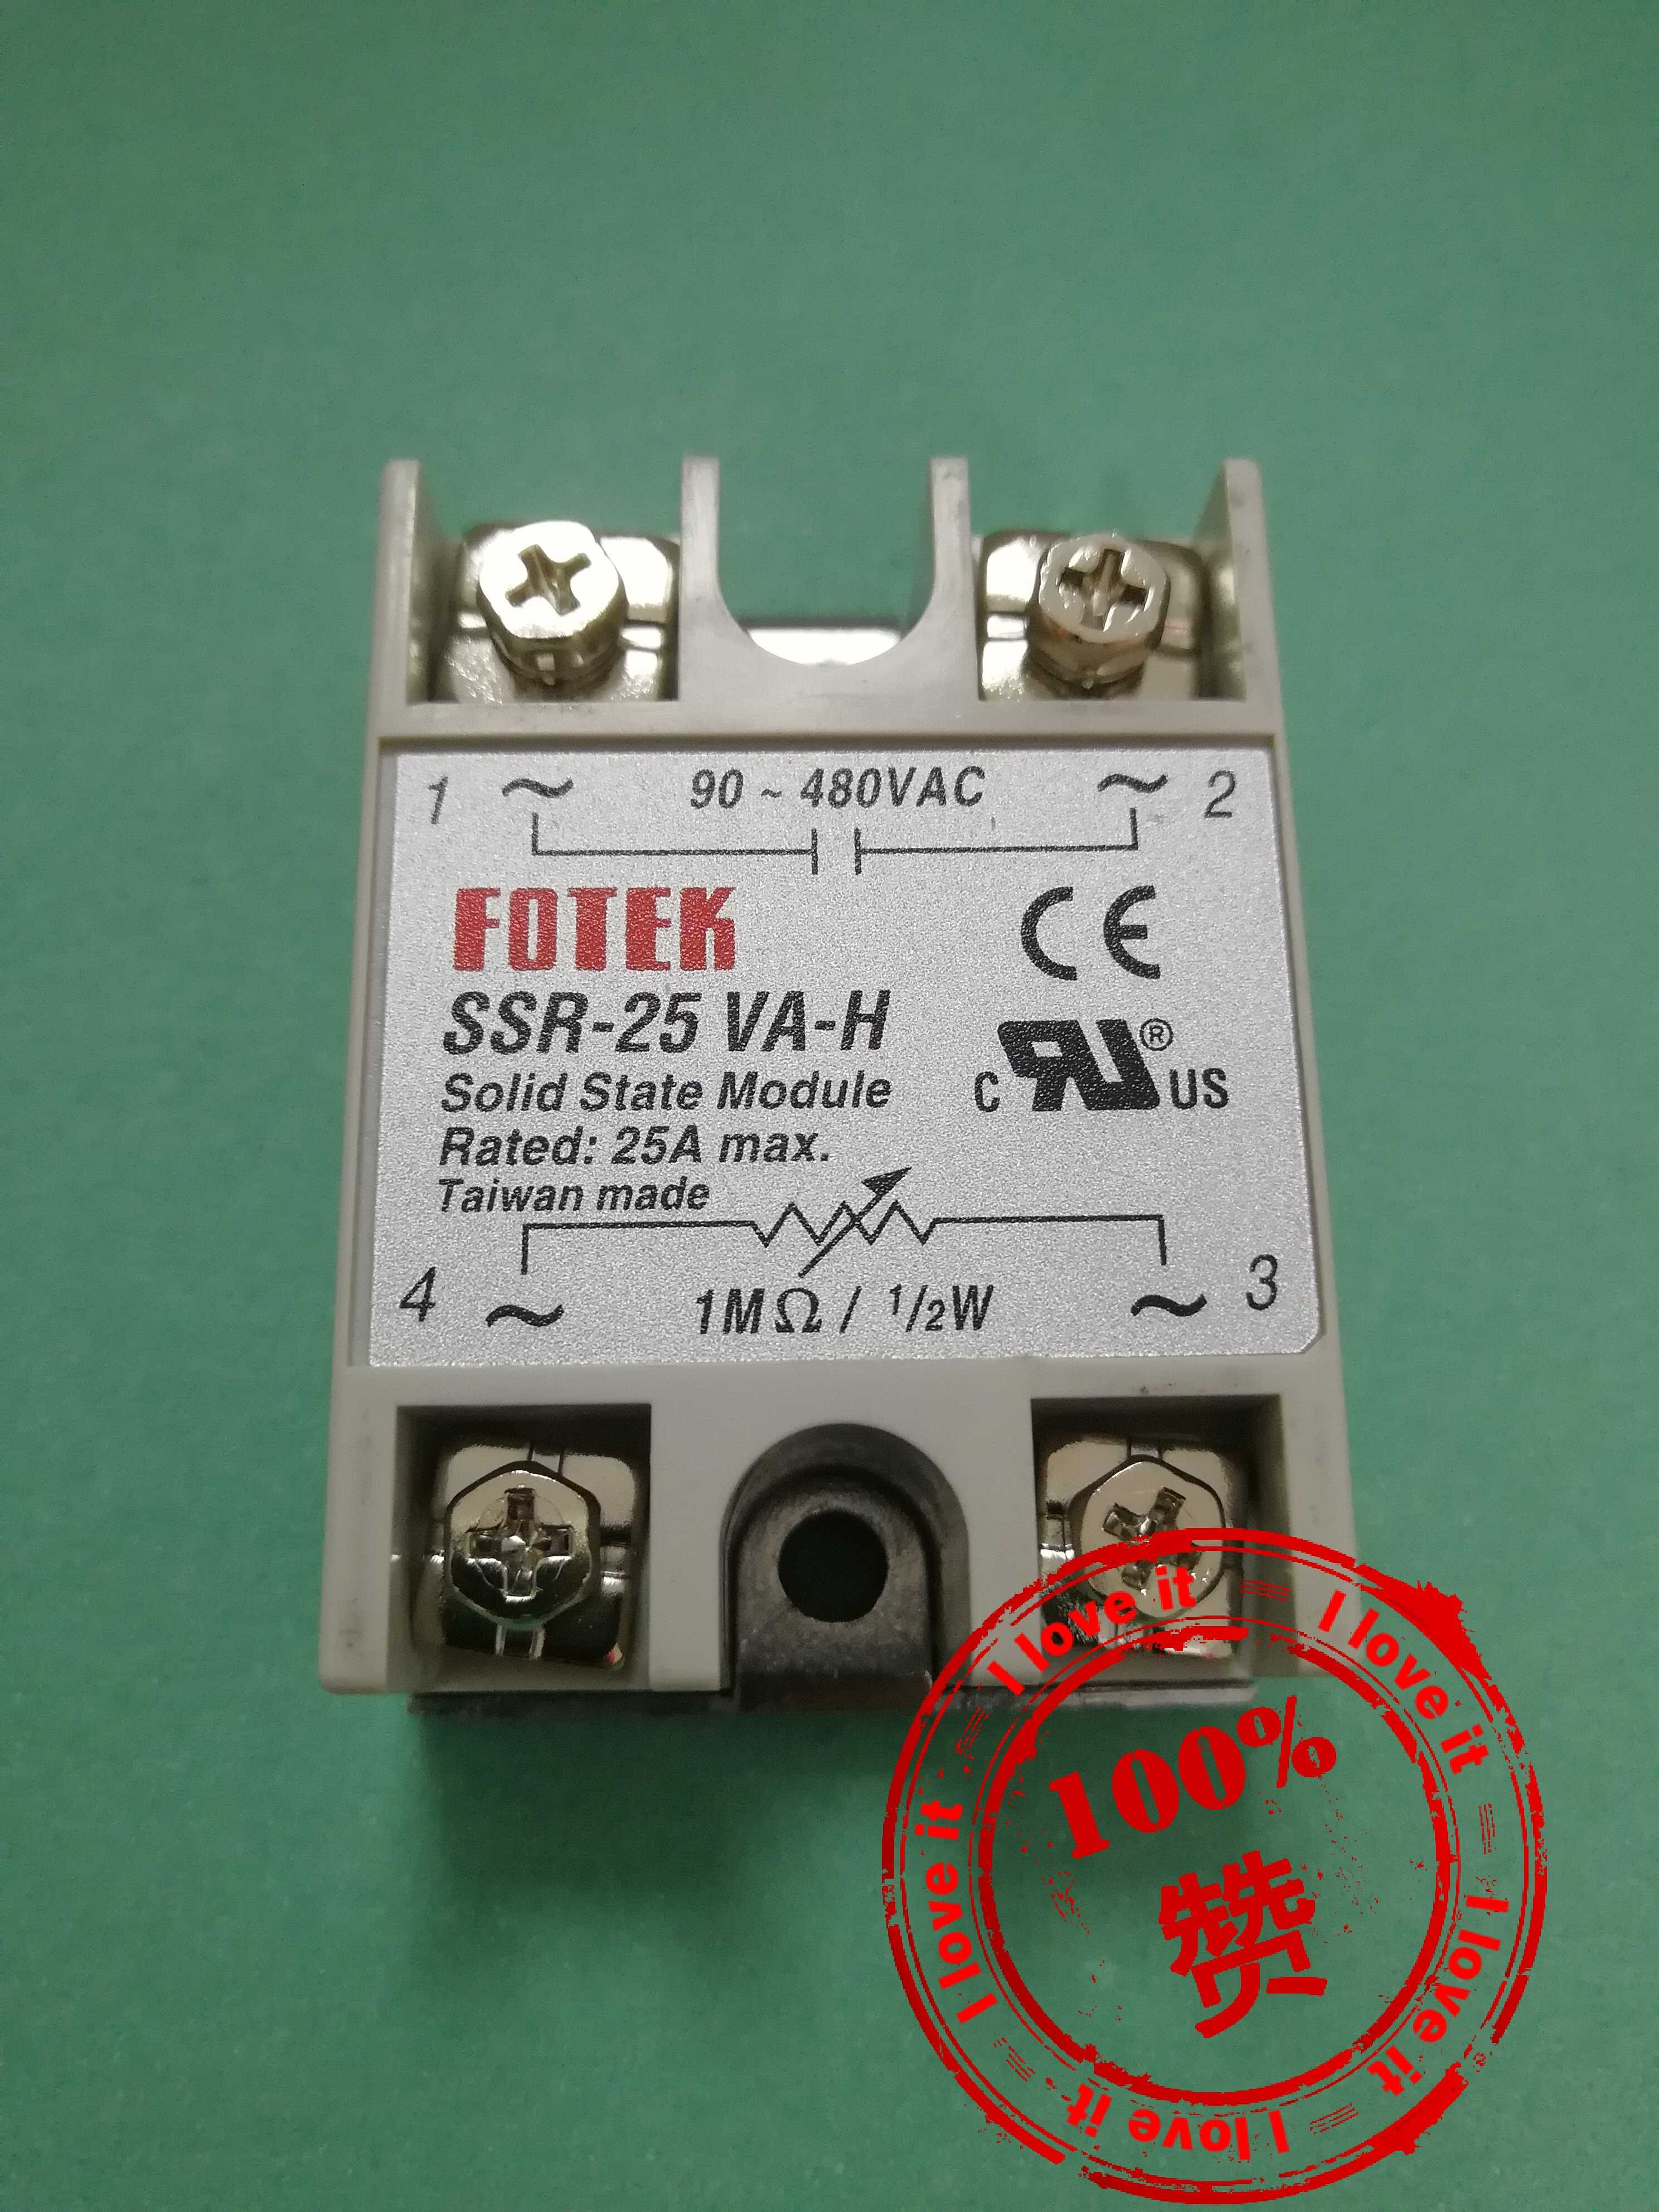 Single phase withstand voltage solid state relay SSR-25VA-H New imported ssr-25Single phase withstand voltage solid state relay SSR-25VA-H New imported ssr-25